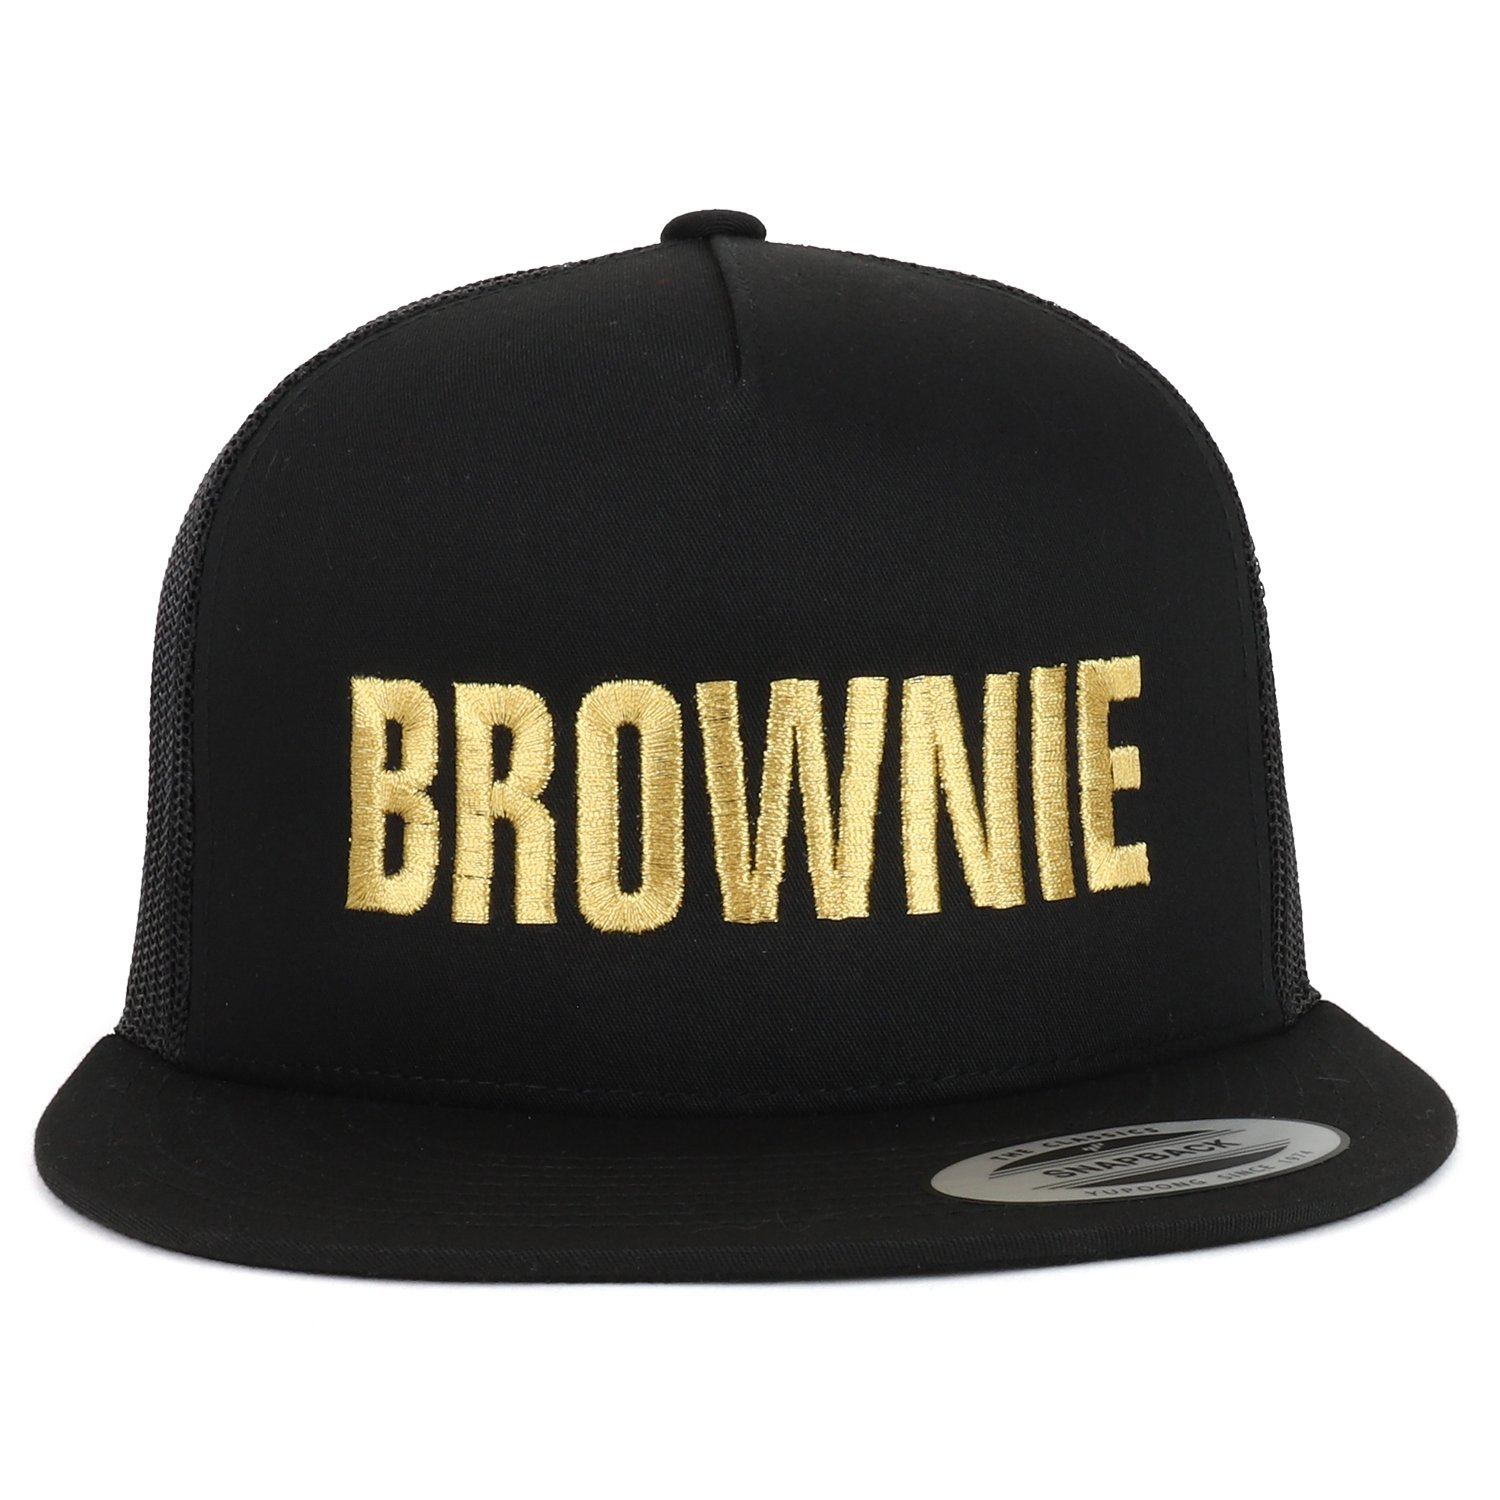 9bb14a4a Trendy Apparel Shop Blondie and Brownie Gold Embroidered 5 Panel ...